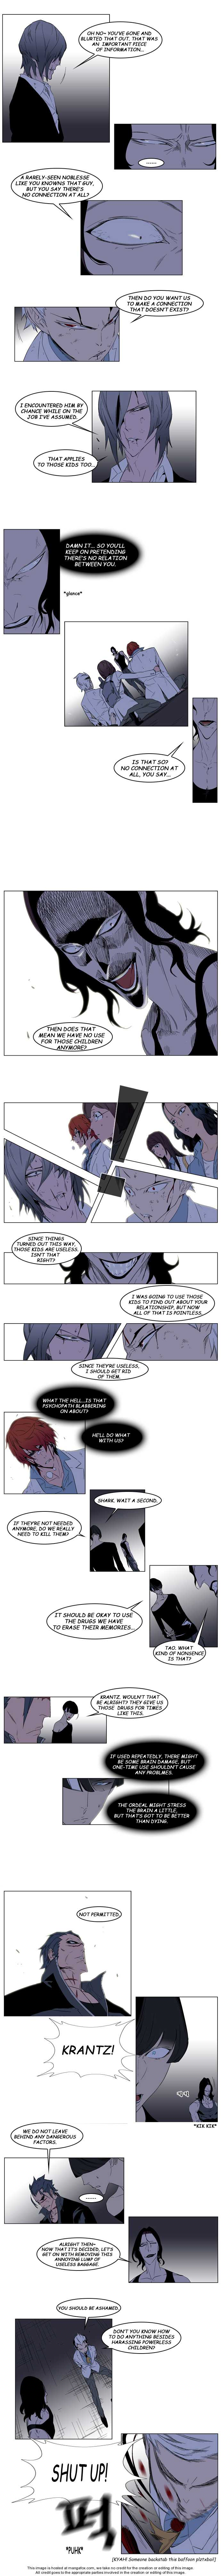 Noblesse 127 Page 2